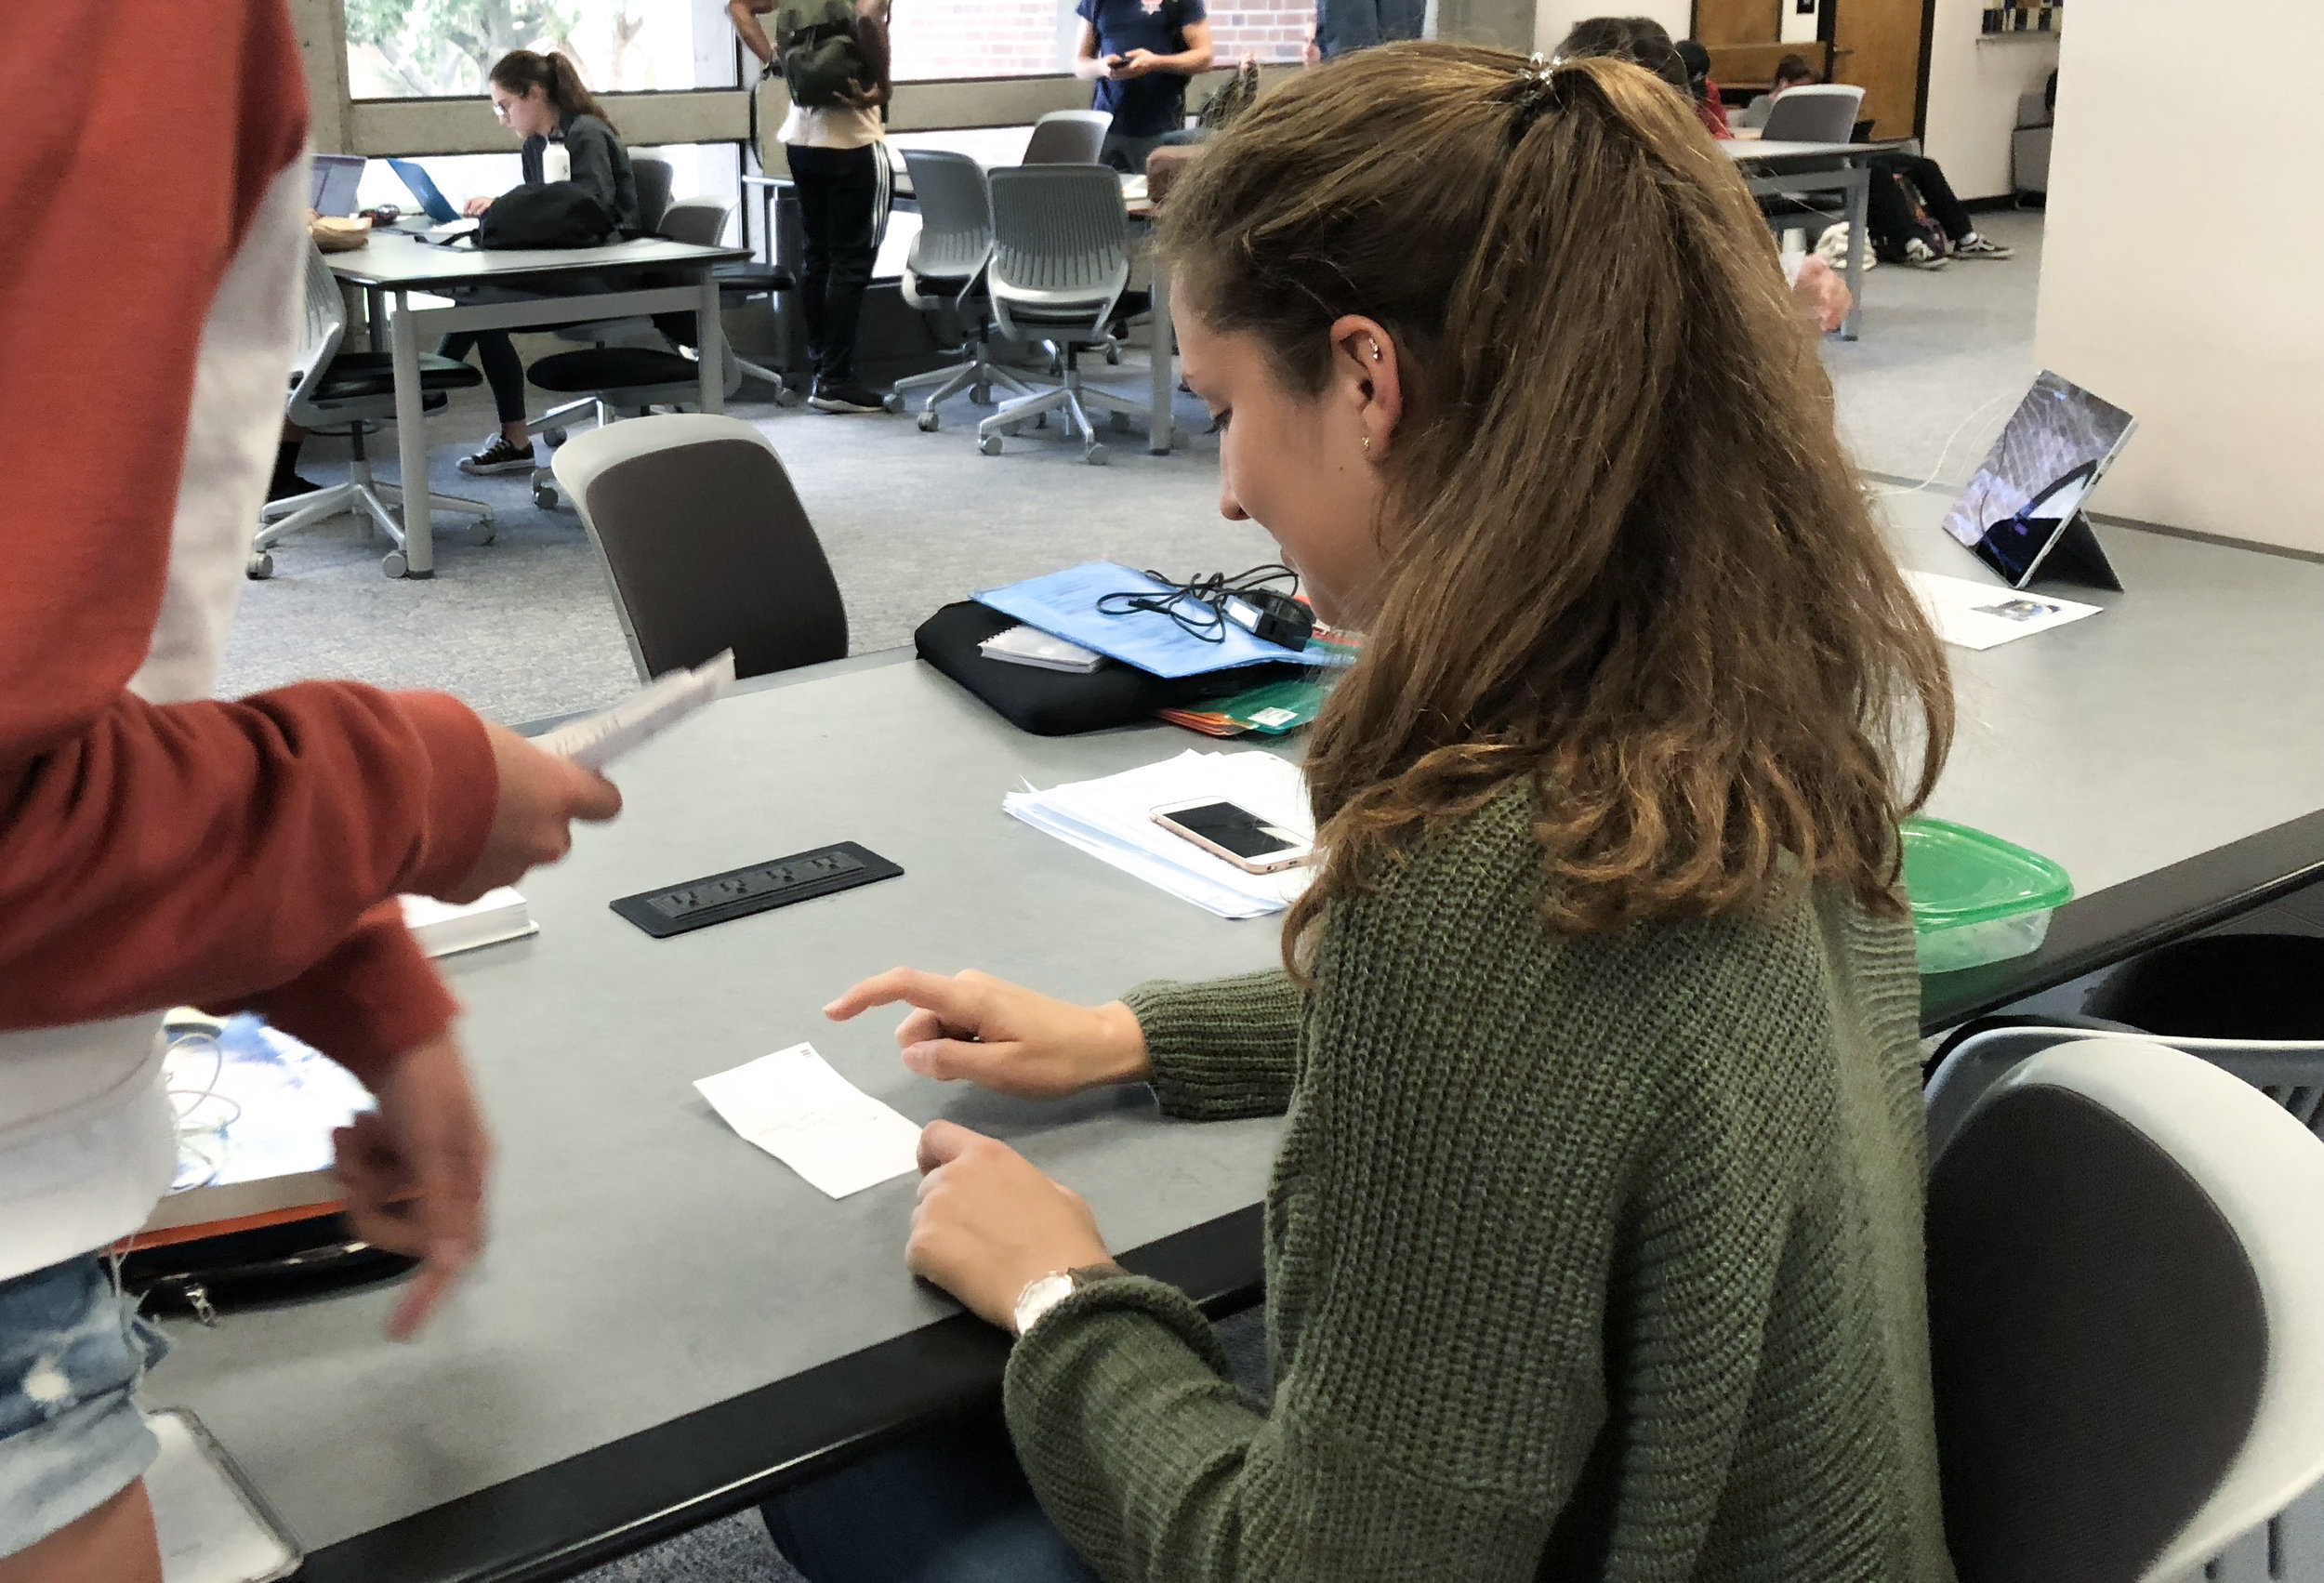 Paper prototype being tested. The test involved one group member giving the user an objective, one member swapping the pieces in response to what the the user 'clicked' , and one member observing and recording how the user interacted with the design what parts were unclear.